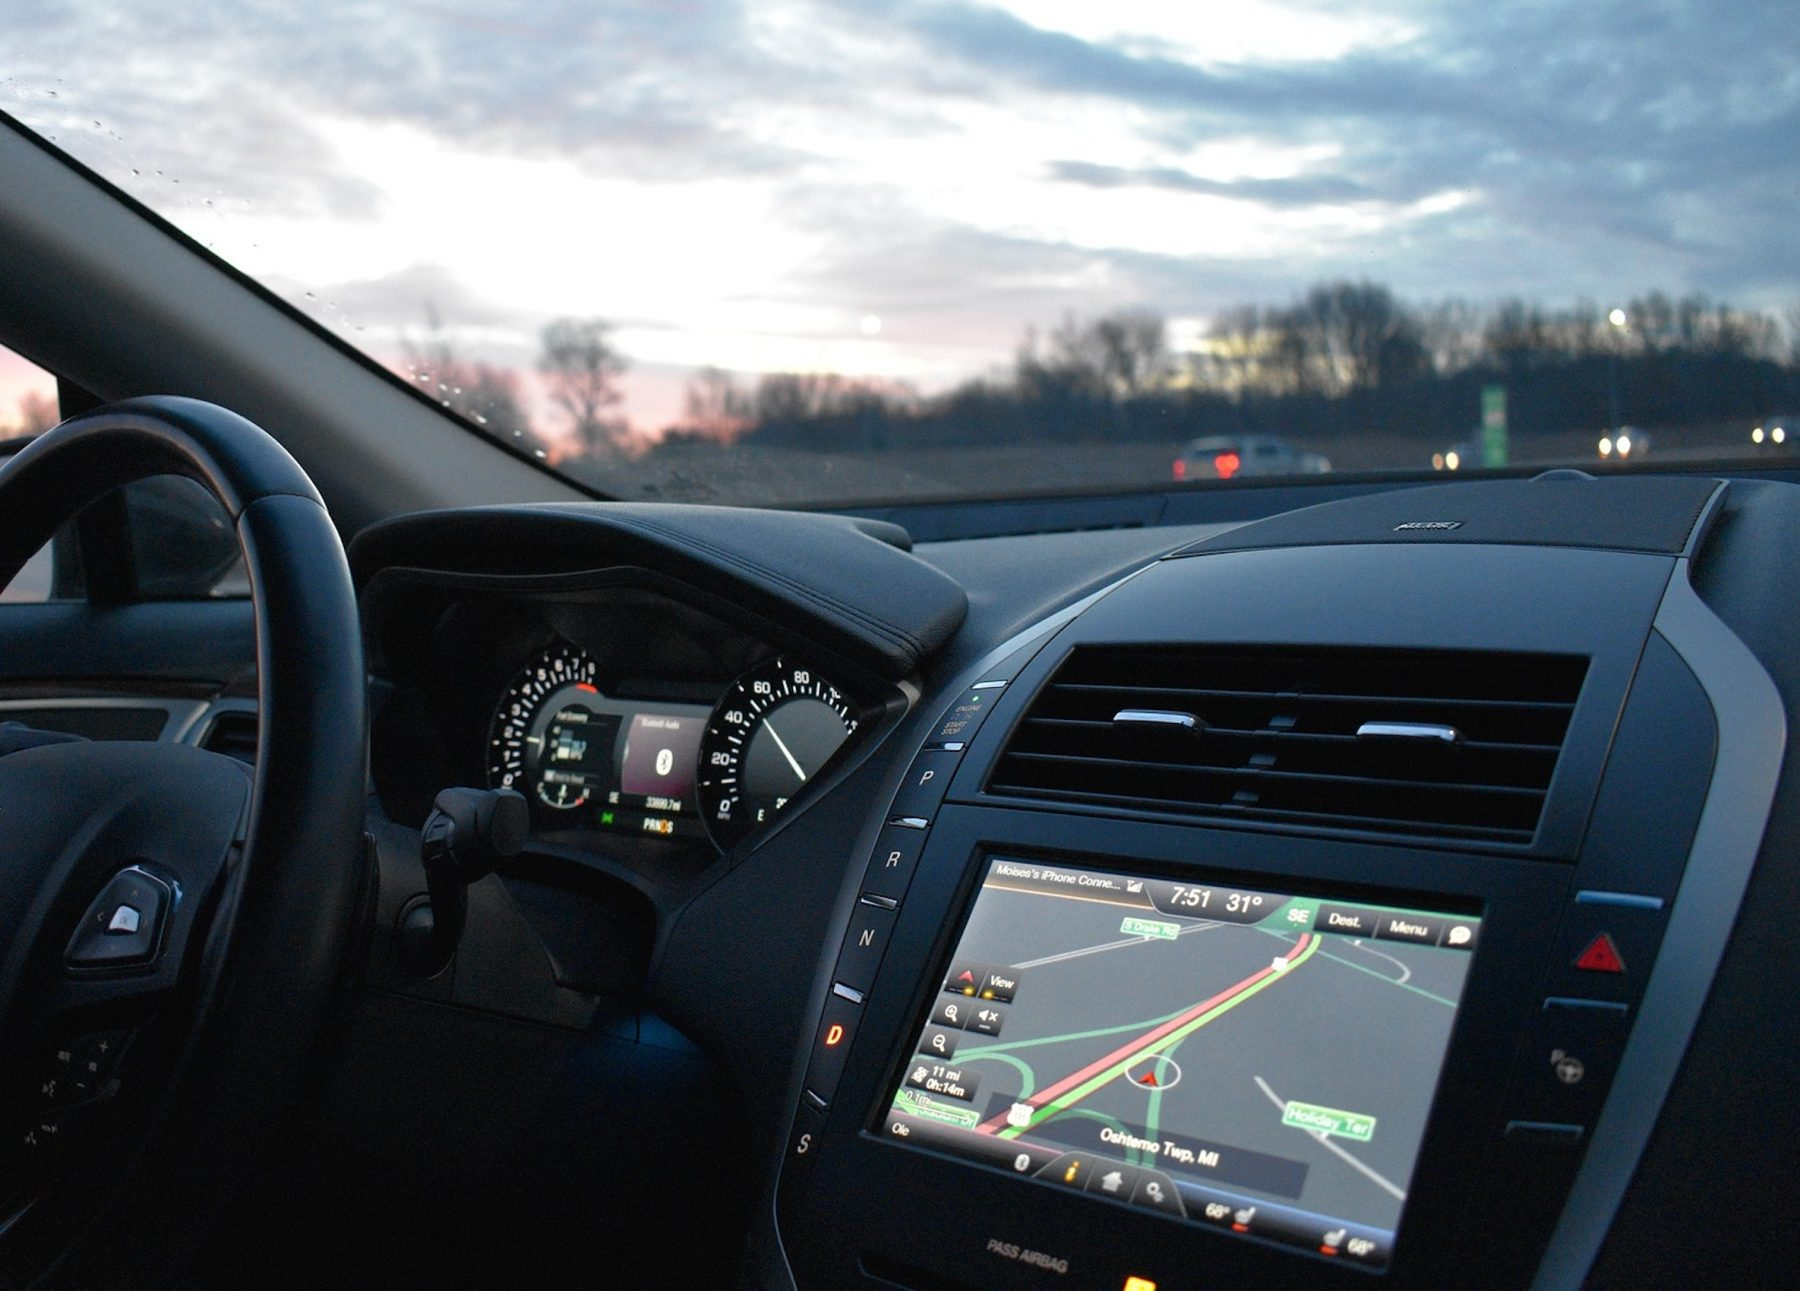 Digital services for connected cars